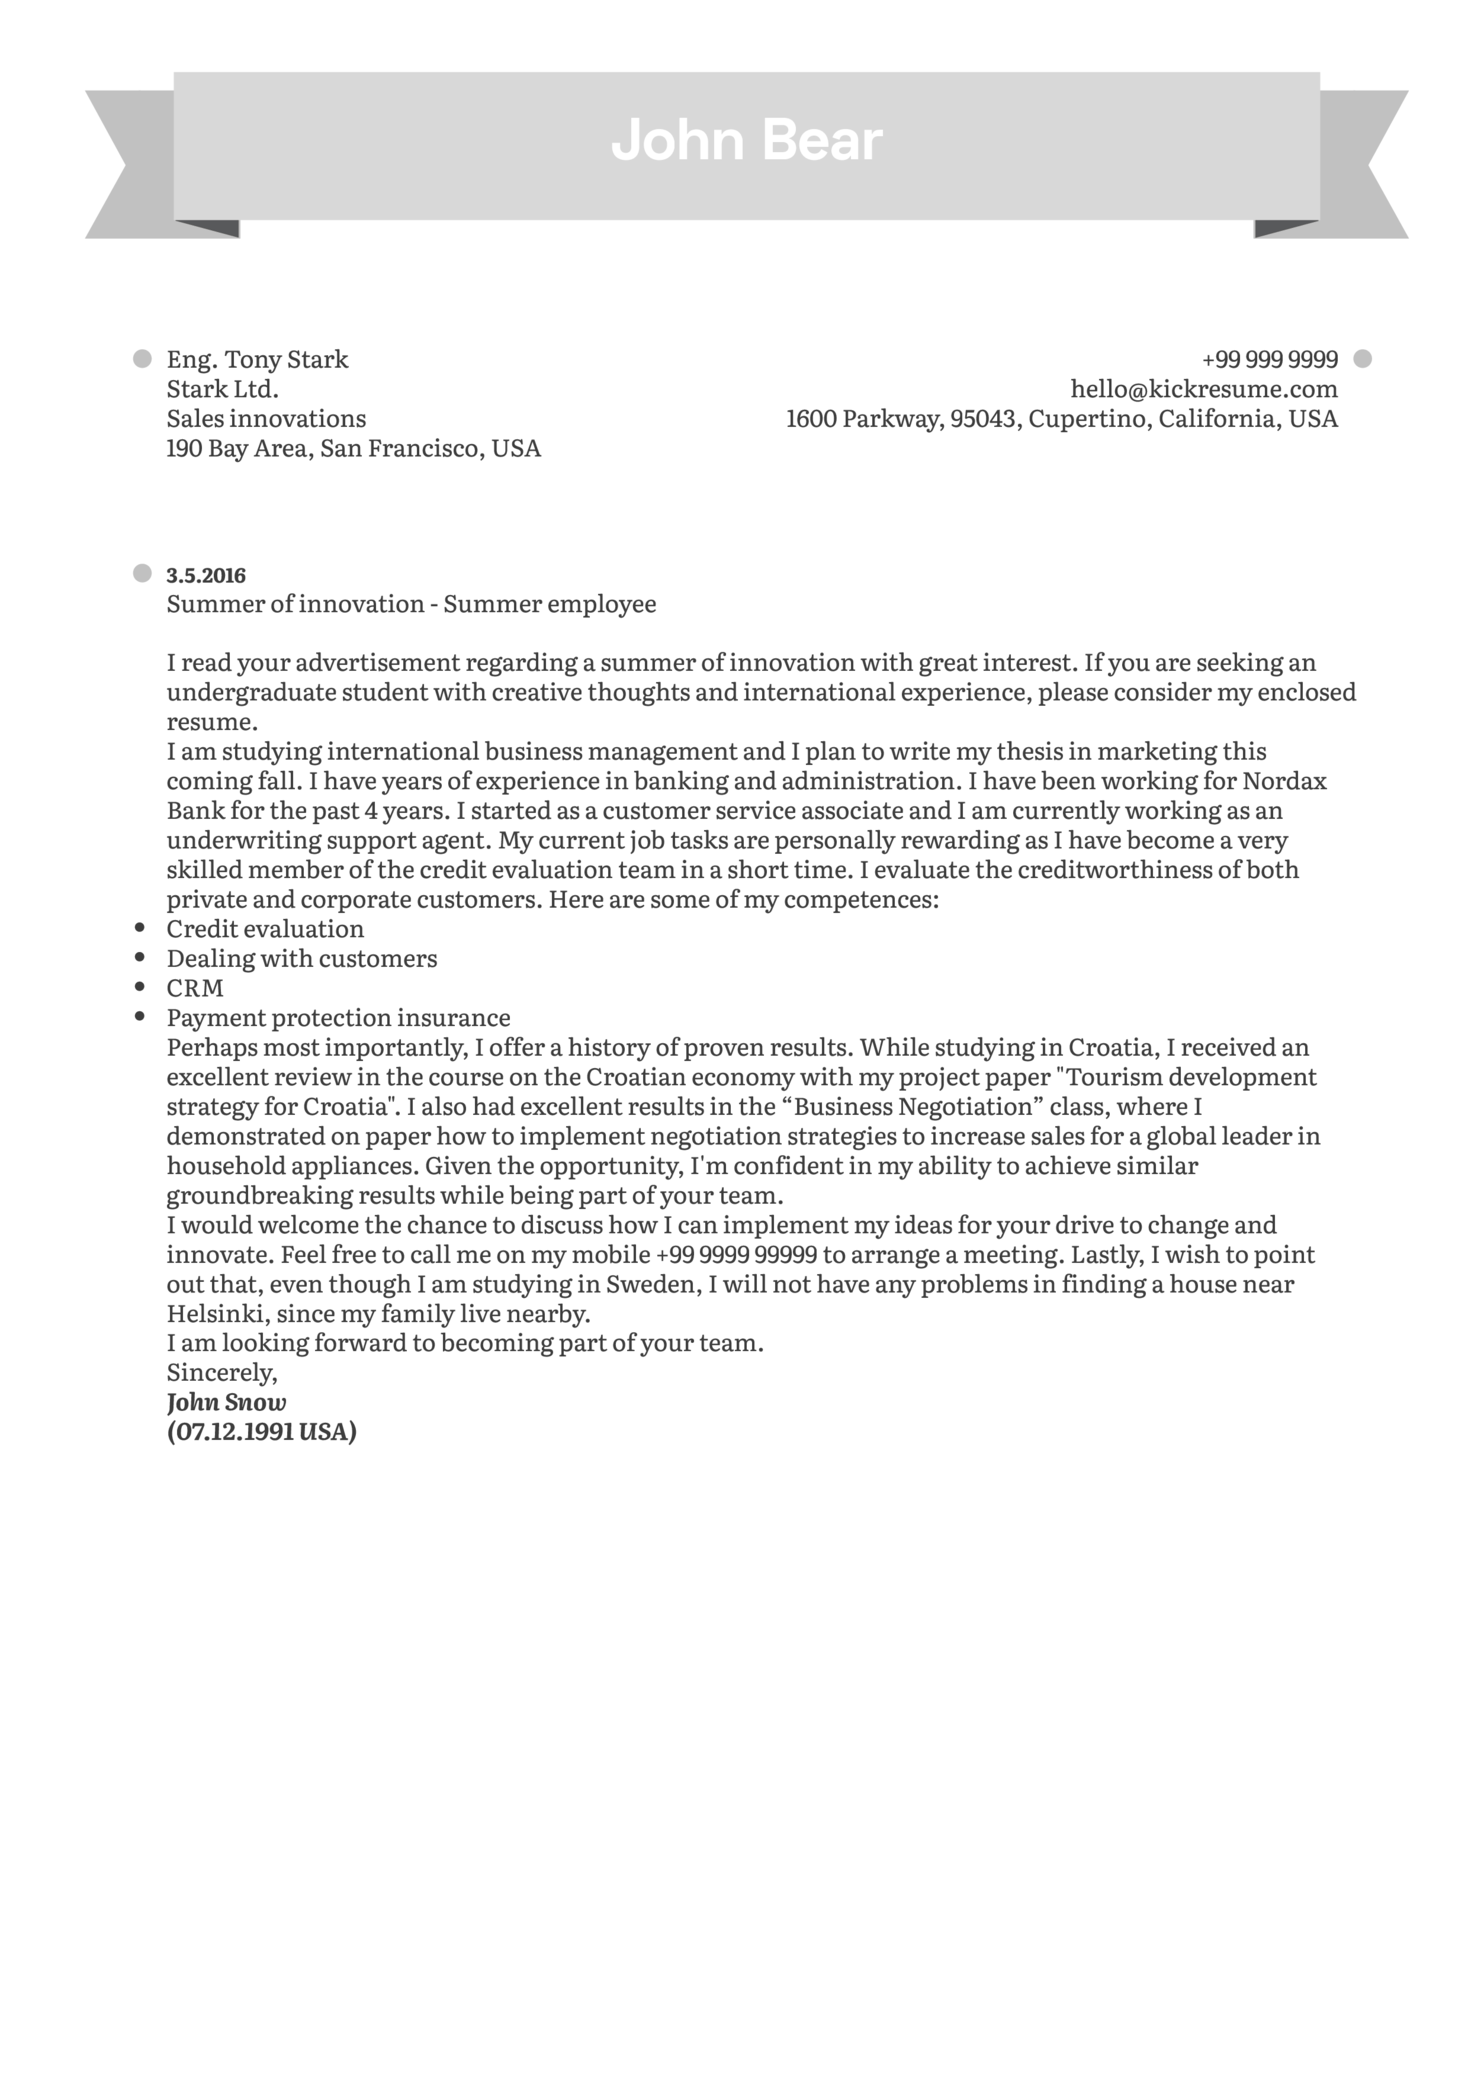 sample cover letter for college student job shishita world com